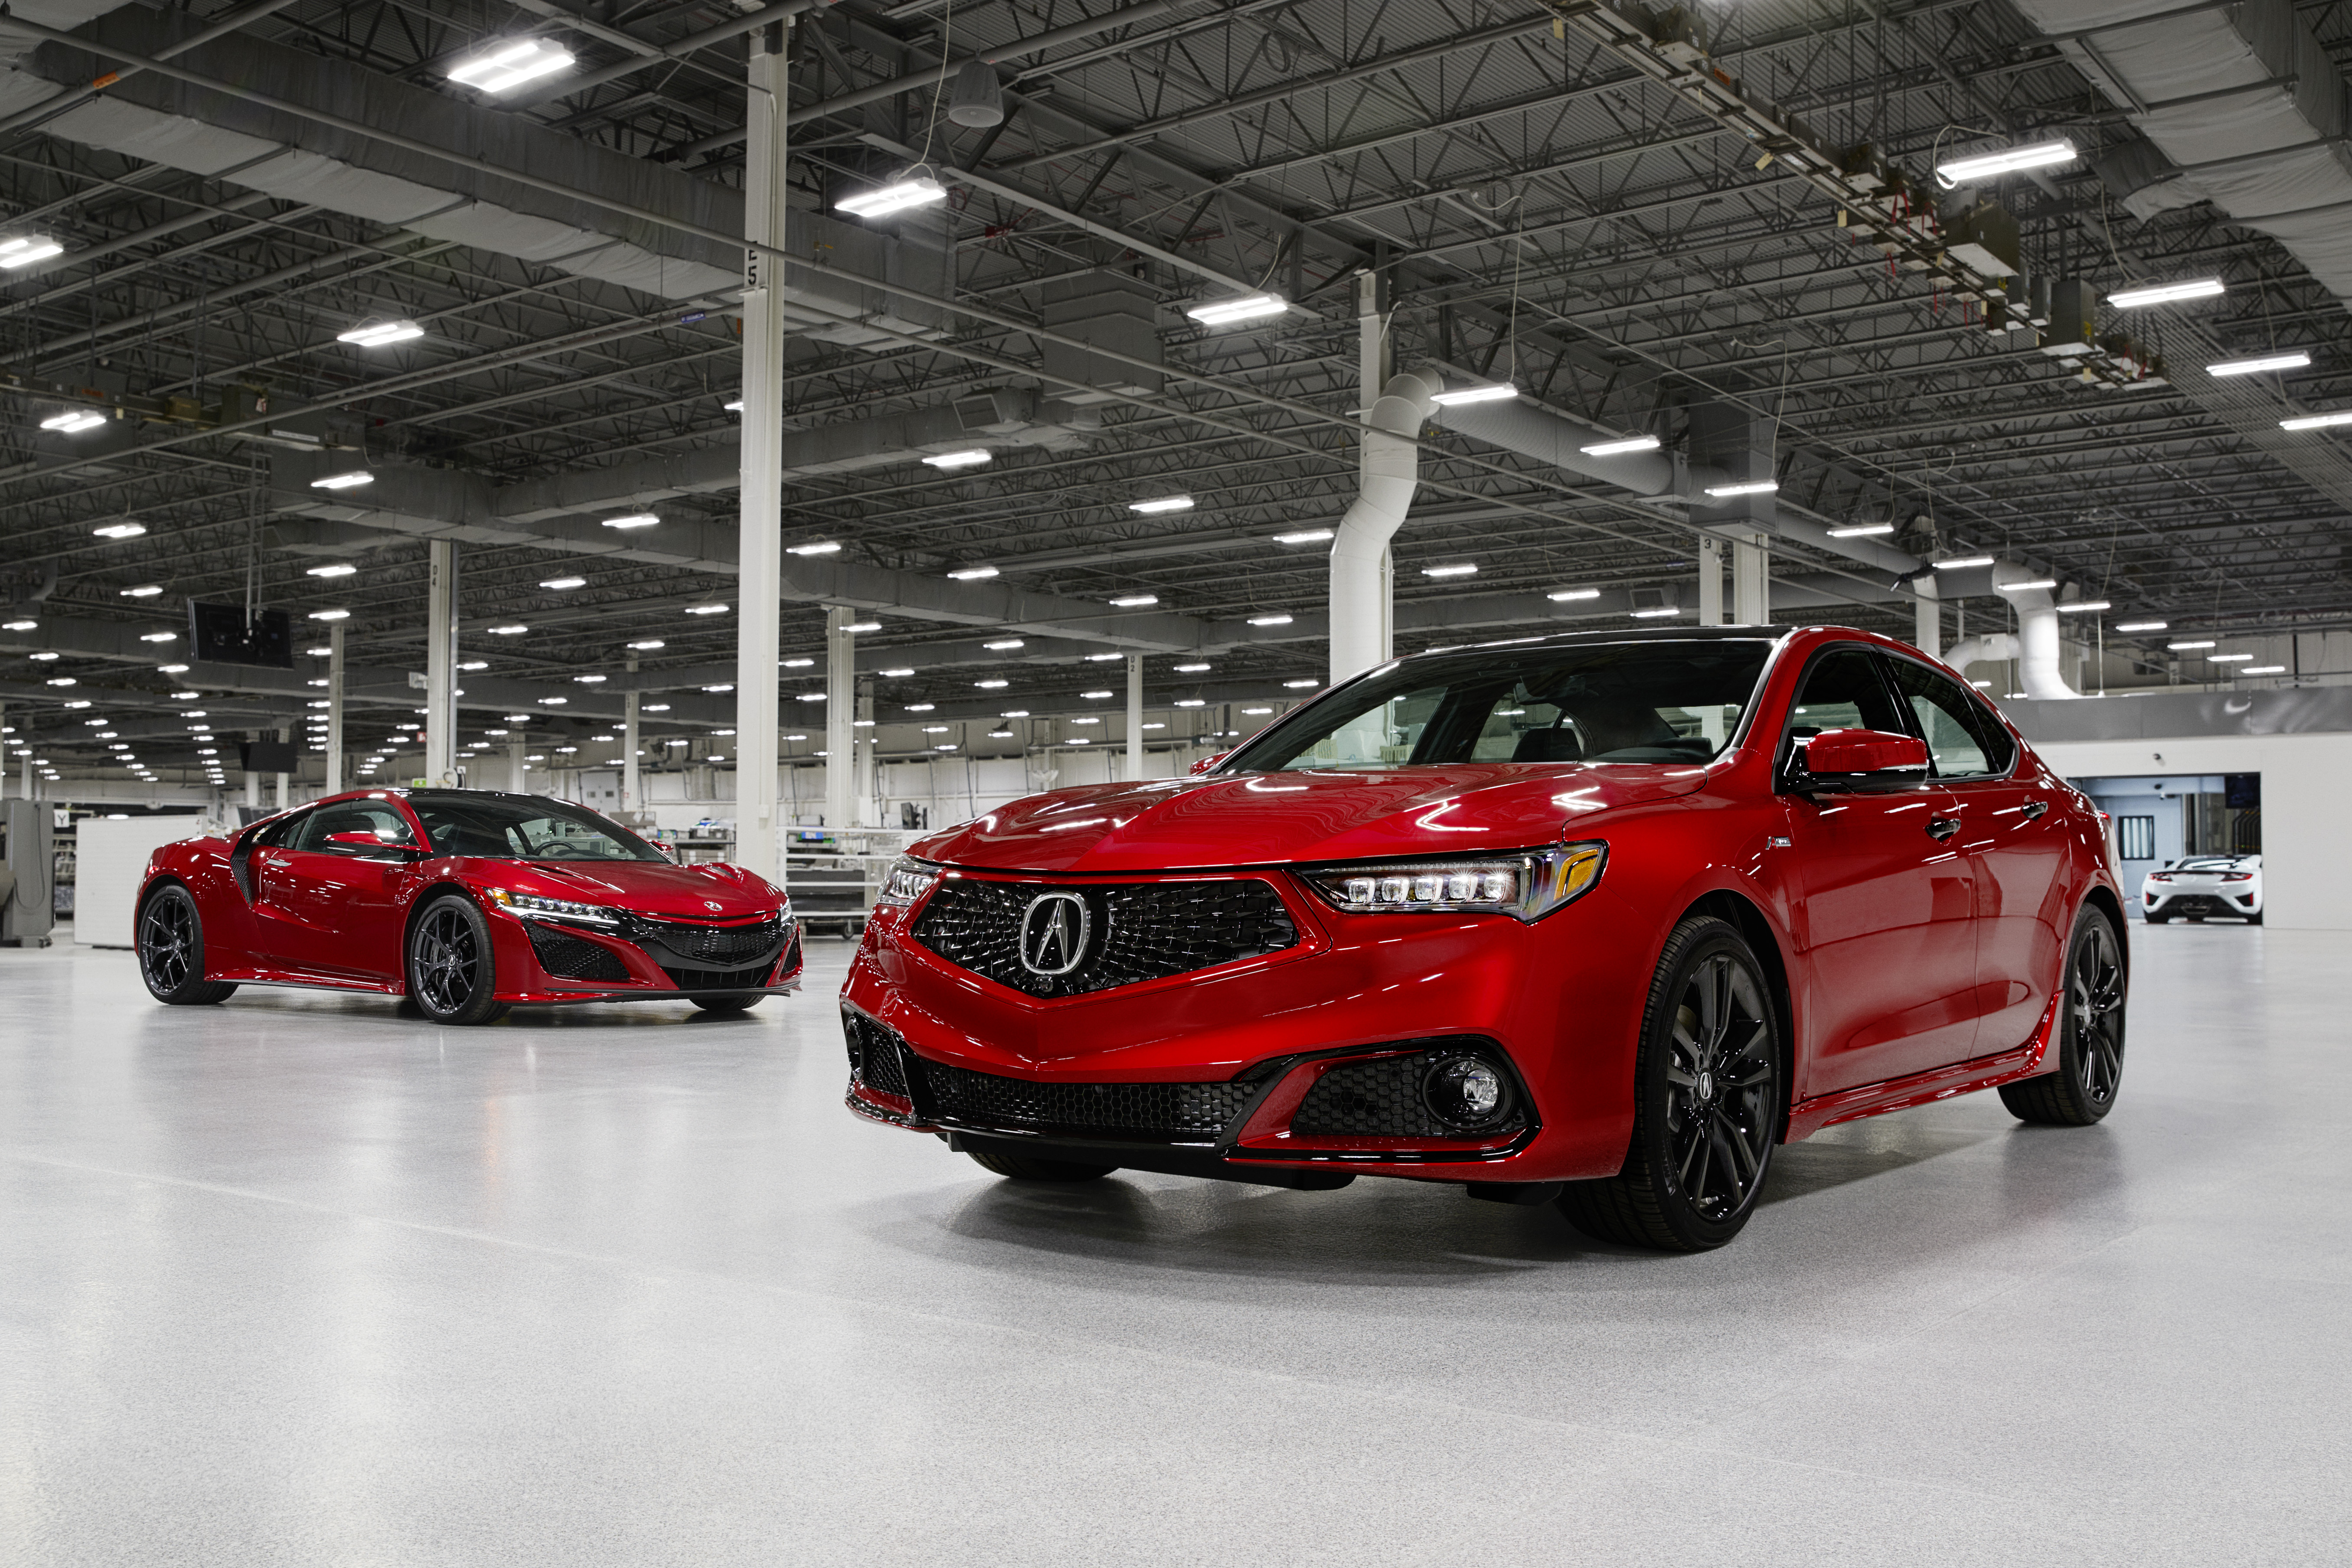 Acura TLX PMC